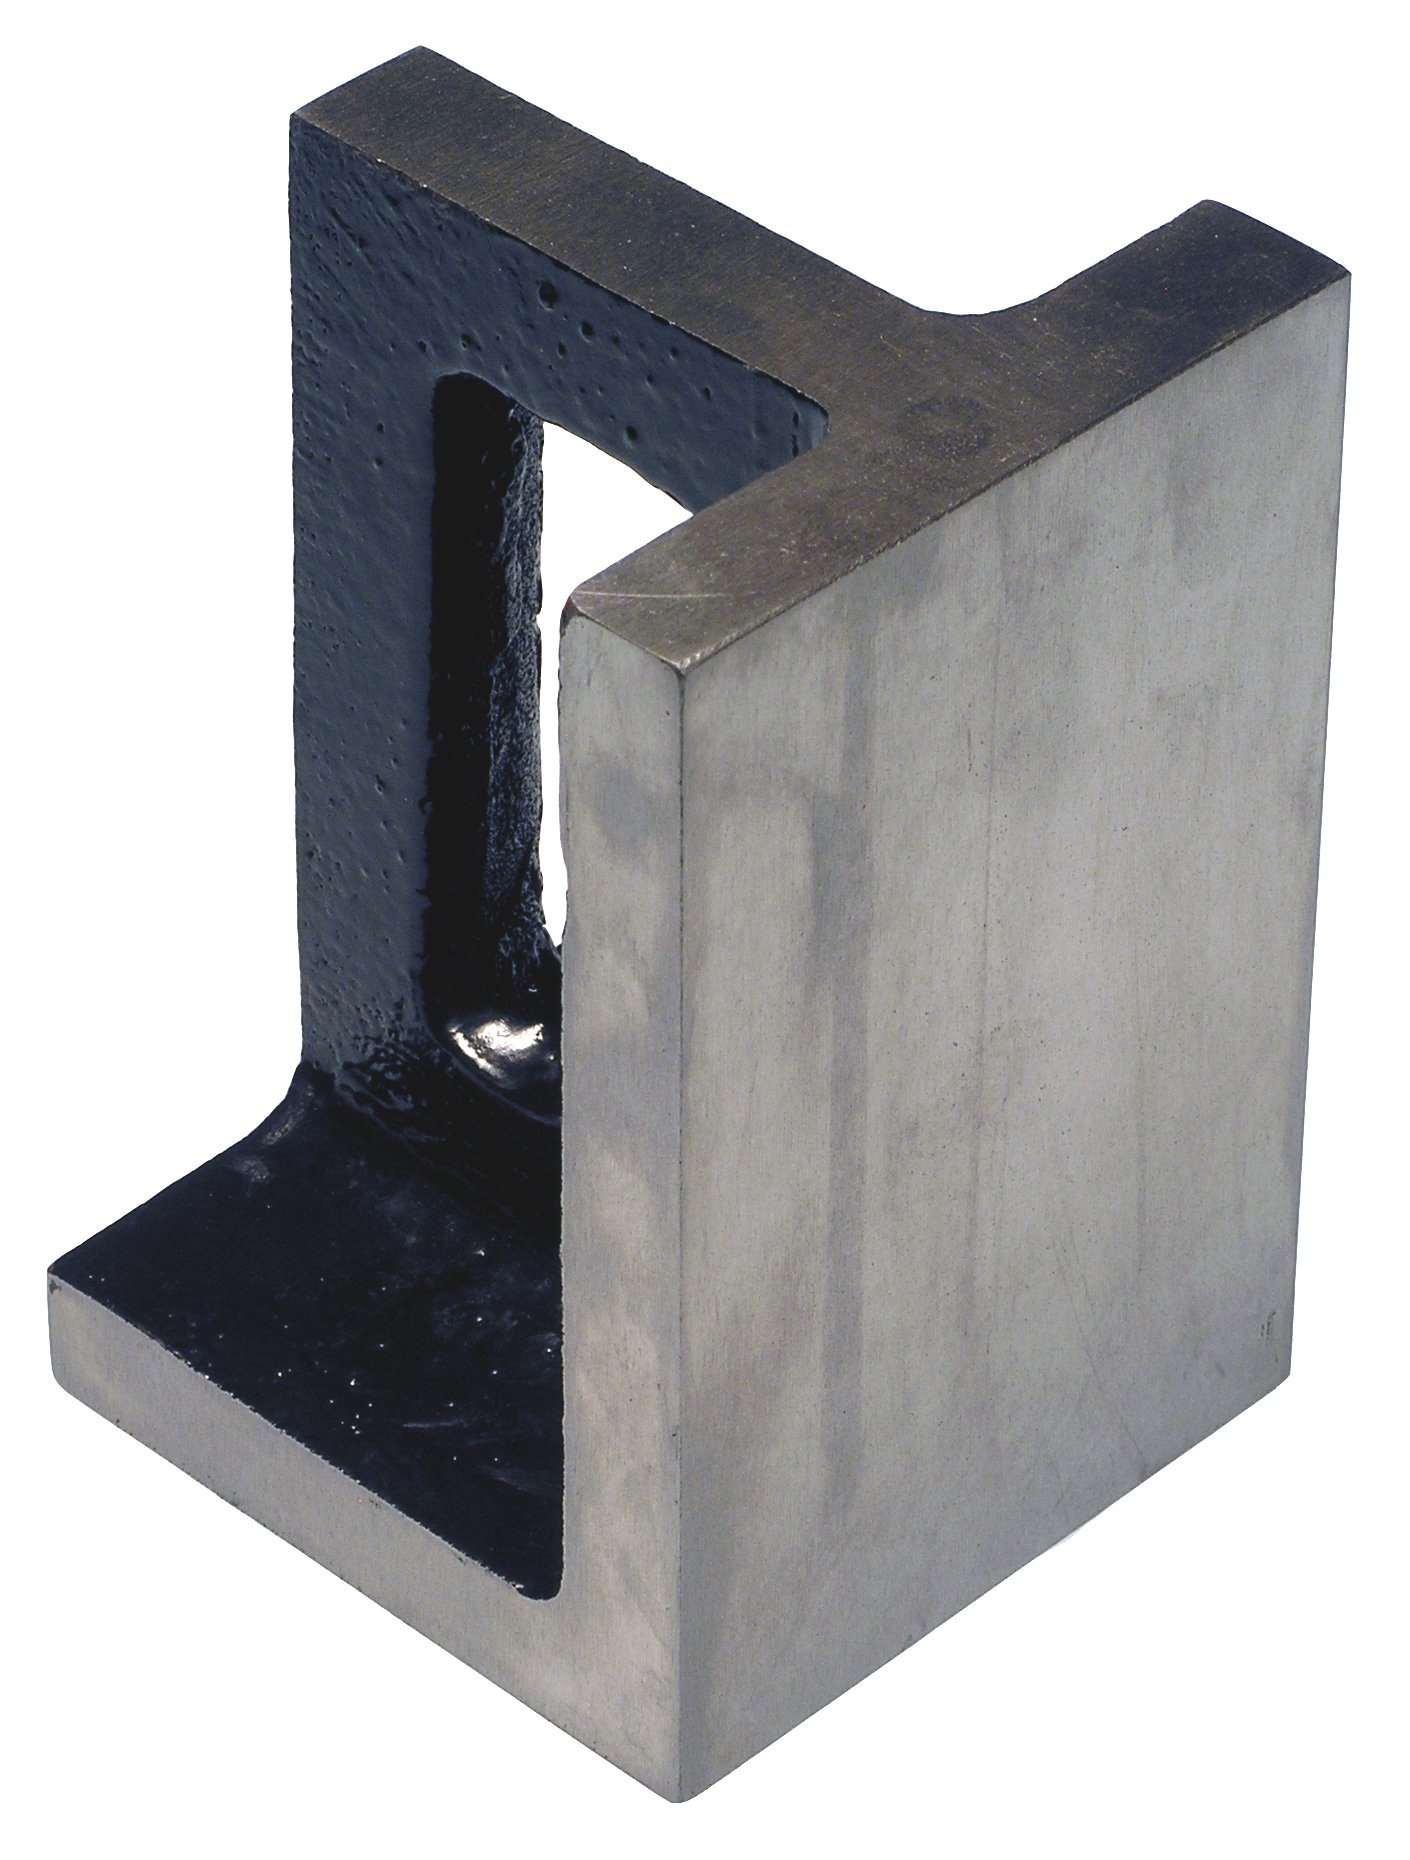 Value Line 4 x 5 x 8 Universal Right Angle Iron - Ground by Suburban Tool